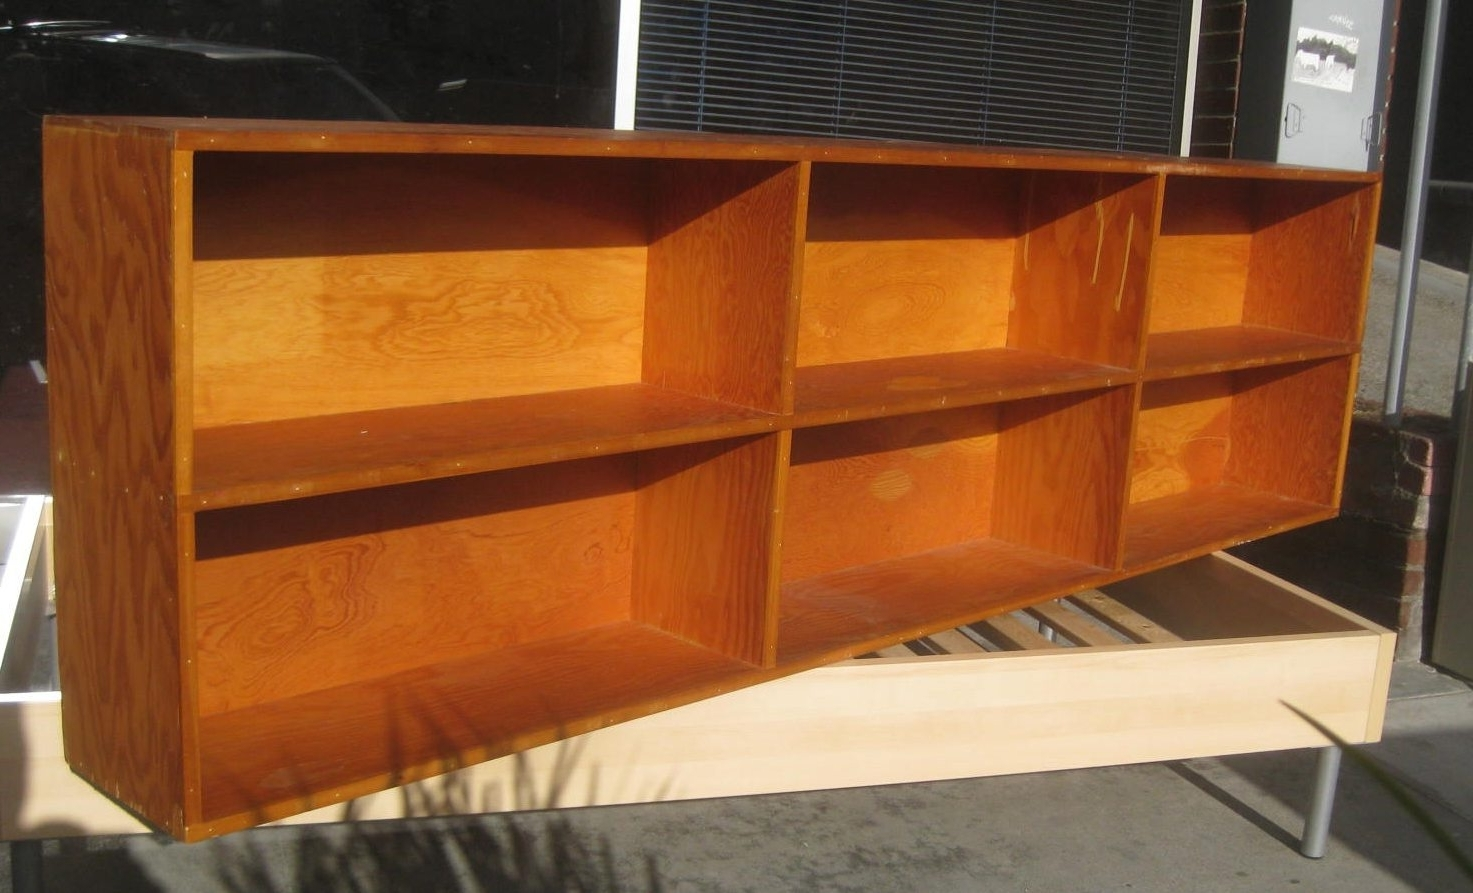 Most Popular Striking Long And Lowe Photos Ideas Cherryescherryes Furniture 32 For Long Bookcases (View 11 of 15)